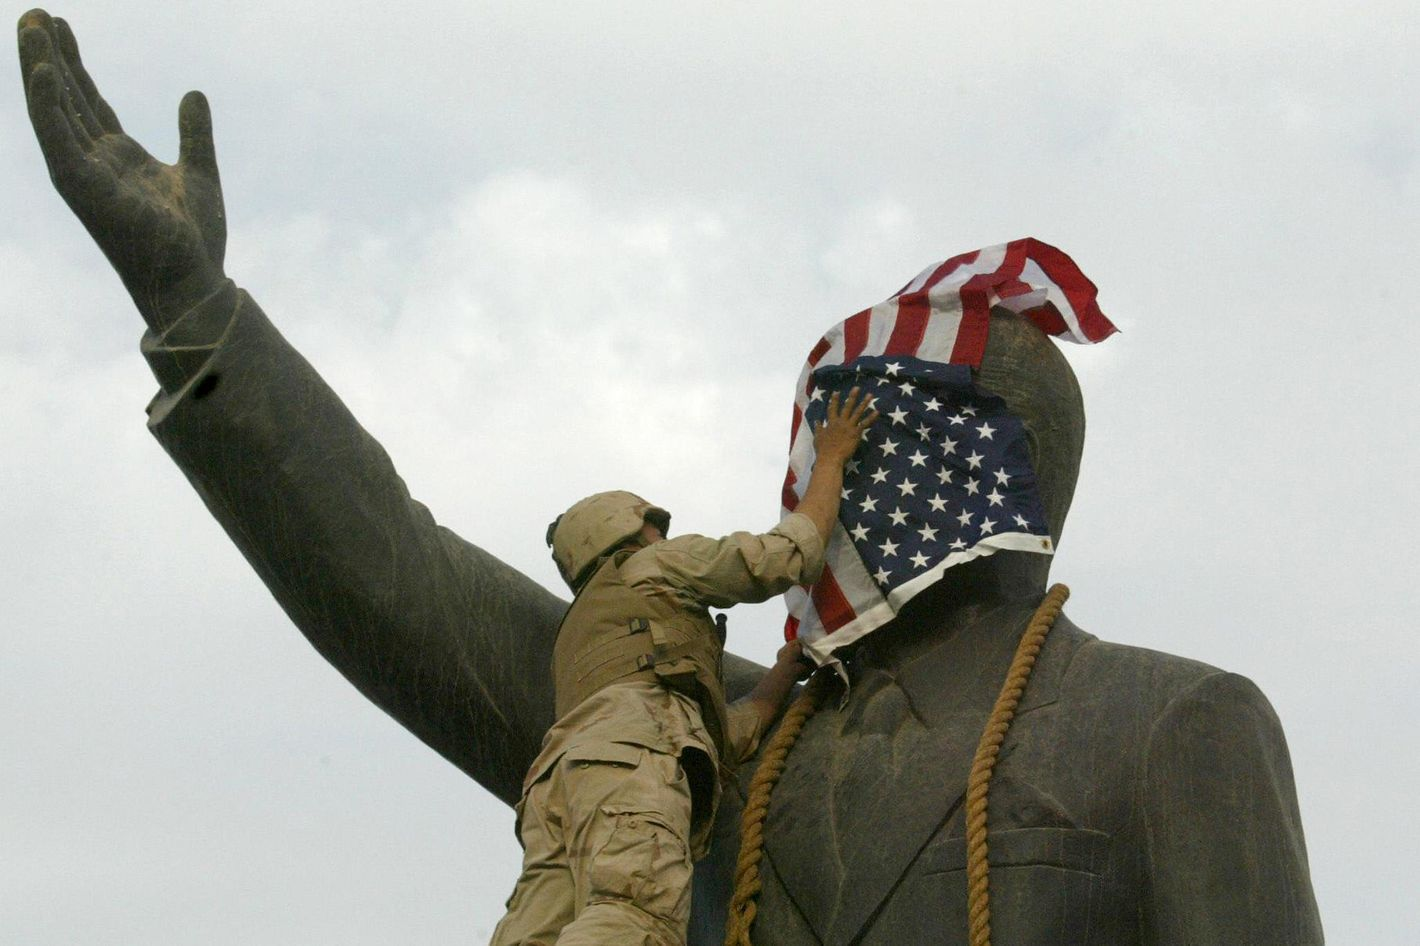 Baghdad, IRAQ: TO GO WITH AFP STORIES ON ANNIVERSARY OF THE FALL OF BAGHDAD: (FILES) A US Marine covers the face of Iraqi President Saddam Hussein's statue with the US flag in Baghdad's al-Fardous square 09 April 2003. The world was stunned when iconic images of US marines and Iraqis pulling down a statue of Saddam Hussein flashed across television screens. The toppling of the statue was immediately seized on as symbolising the overthrow of one of the world's most notorious despots. But four years later, some Iraqis say the symbol has turned into a sign of the brutal violence that has devastated their country. The square and its surroundings have changed dramatically since the launch of the invasion in March 2003.  AFP PHOTO/Ramzi HAIDAR (Photo credit should read RAMZI HAIDAR/AFP/Getty Images)